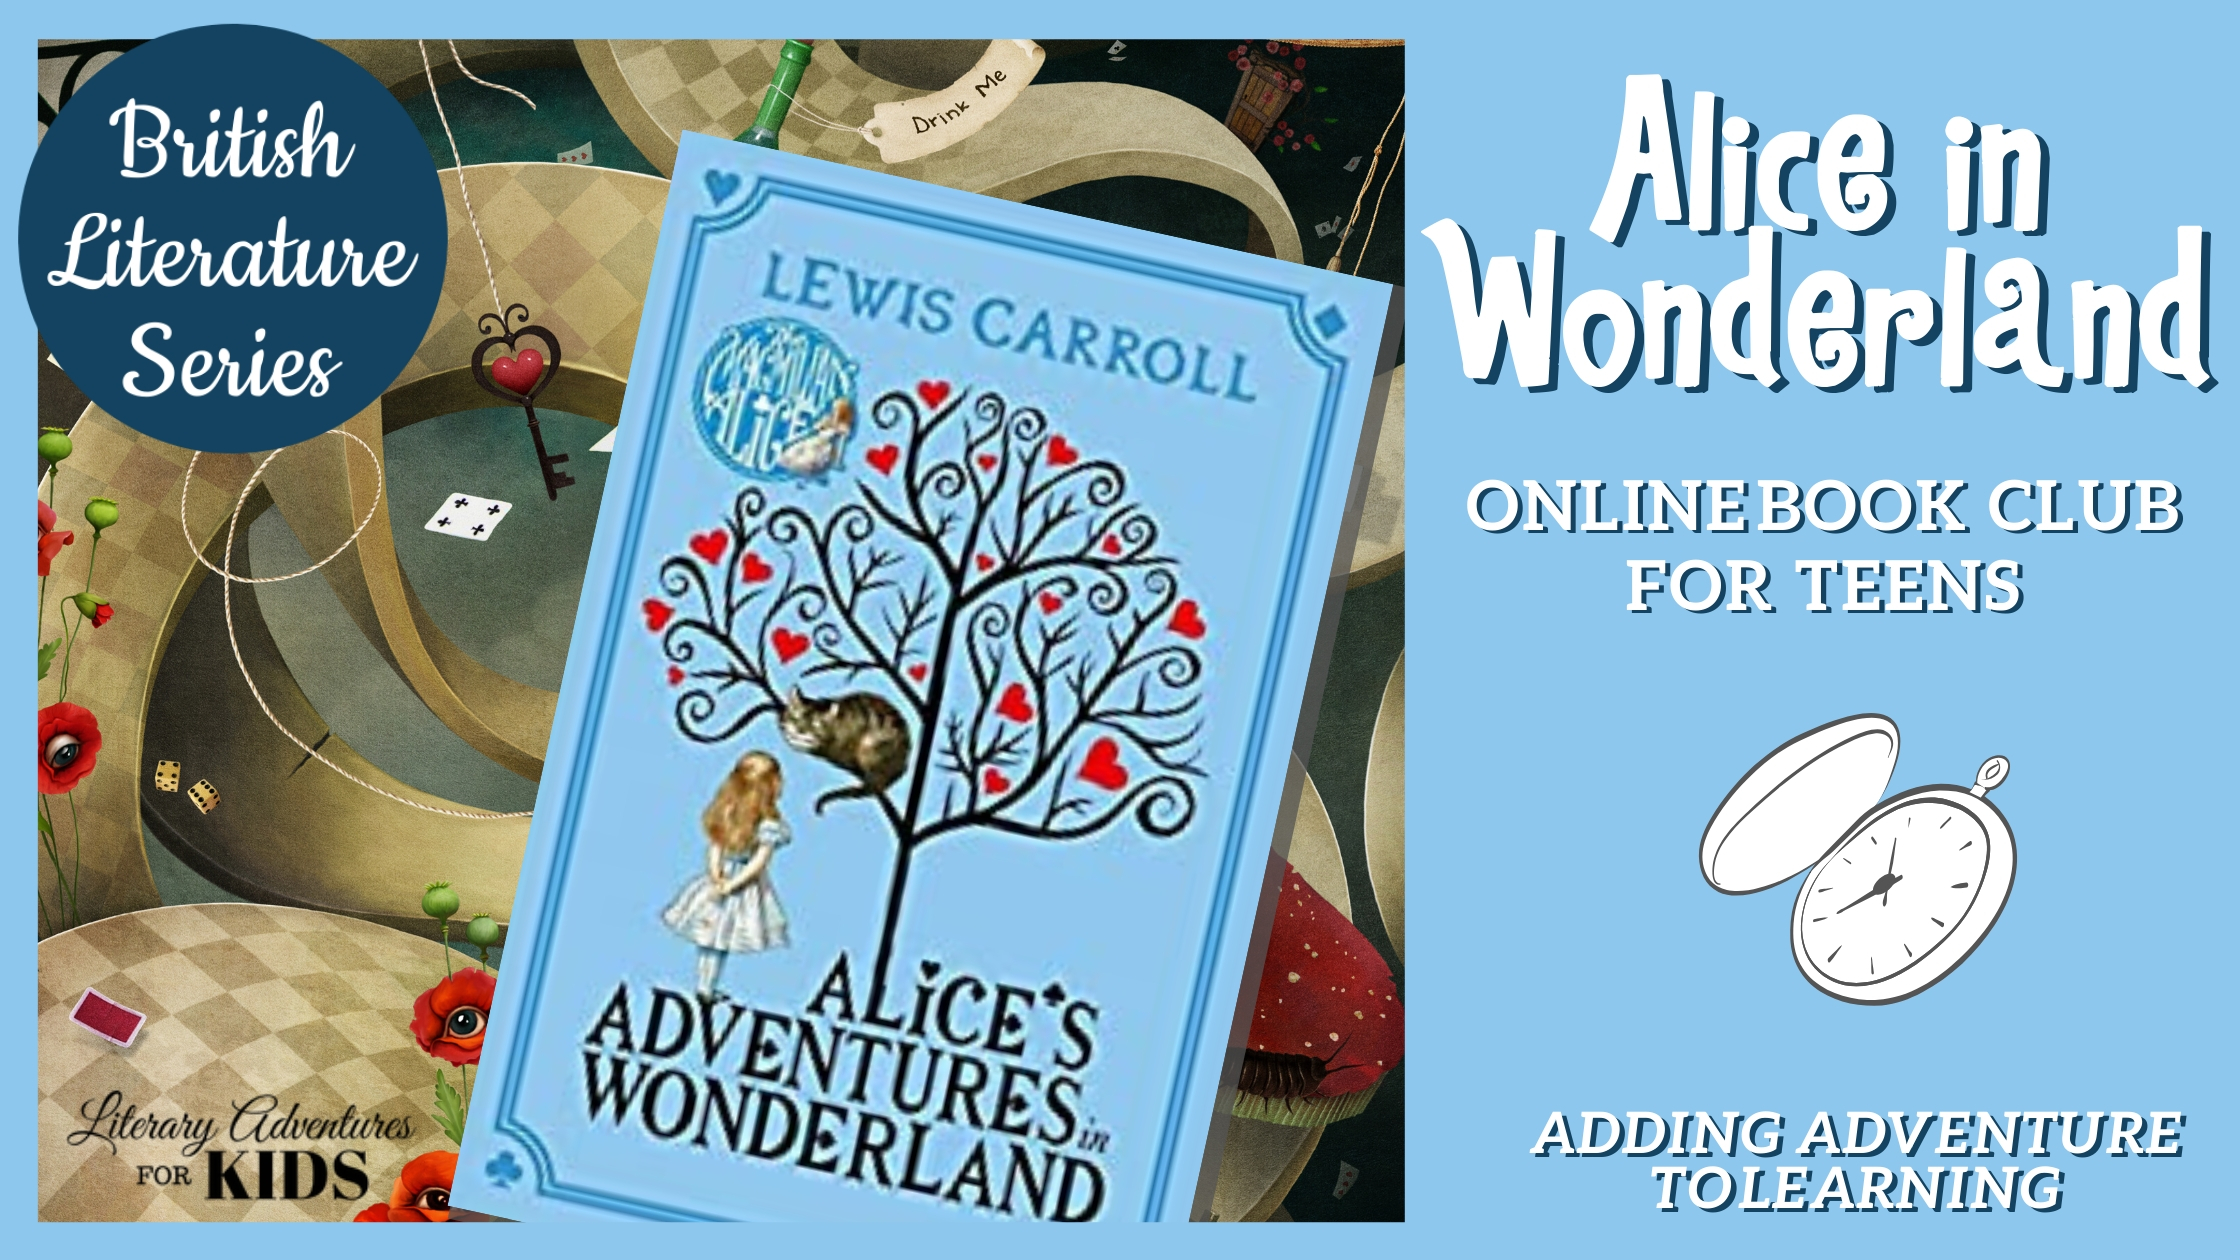 Alice in Wonderland Online Book Club